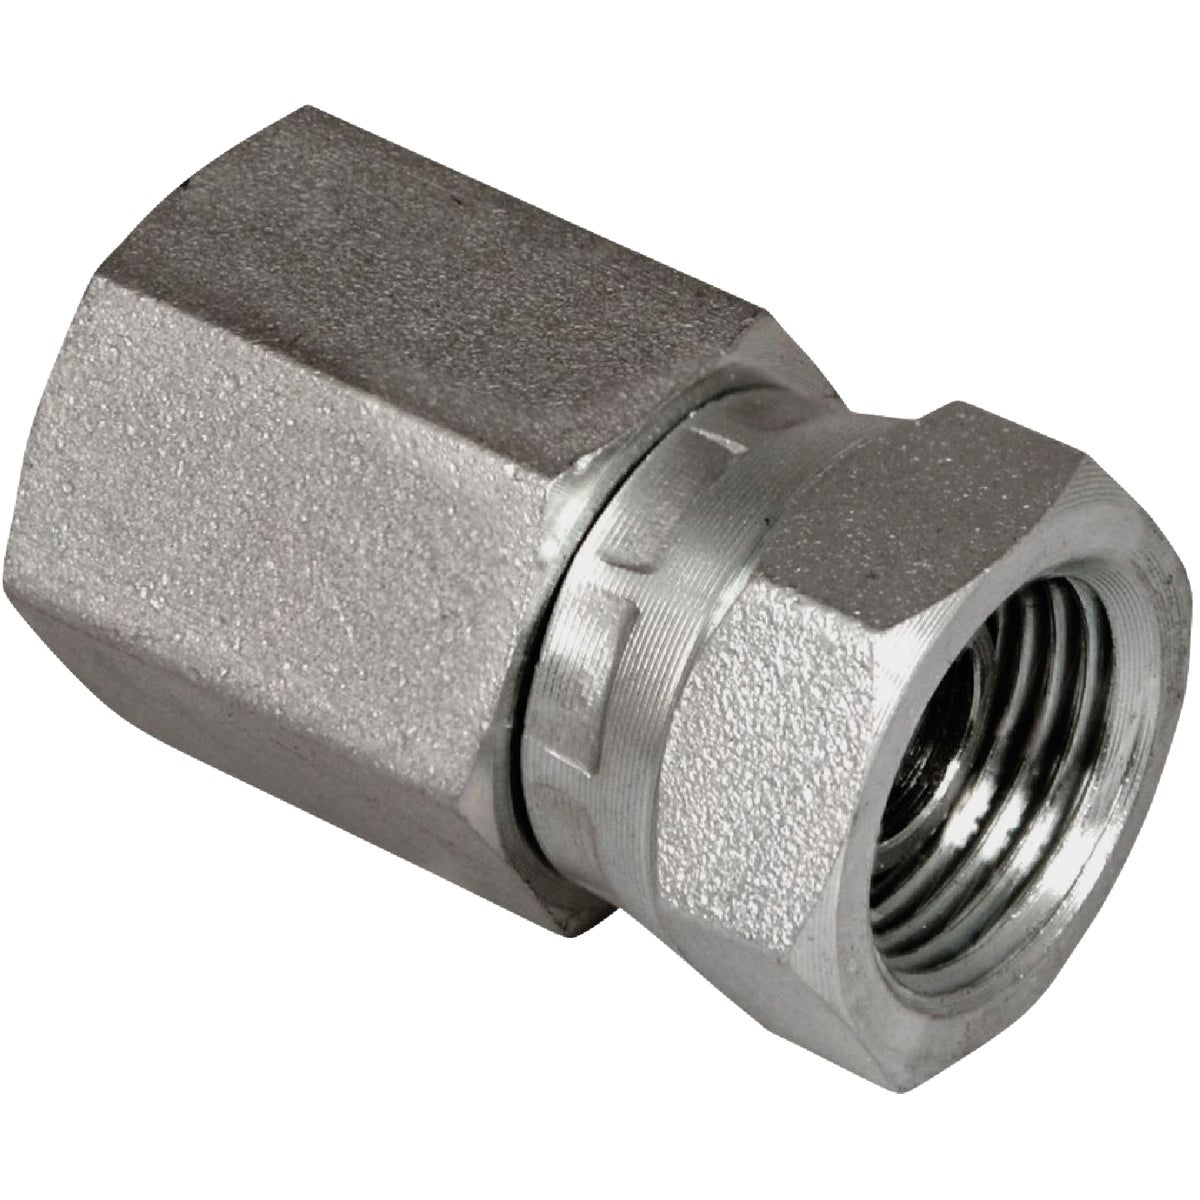 1/2FX1/2F SW HYD ADAPTER - 39004800 by Apache Hose Belting